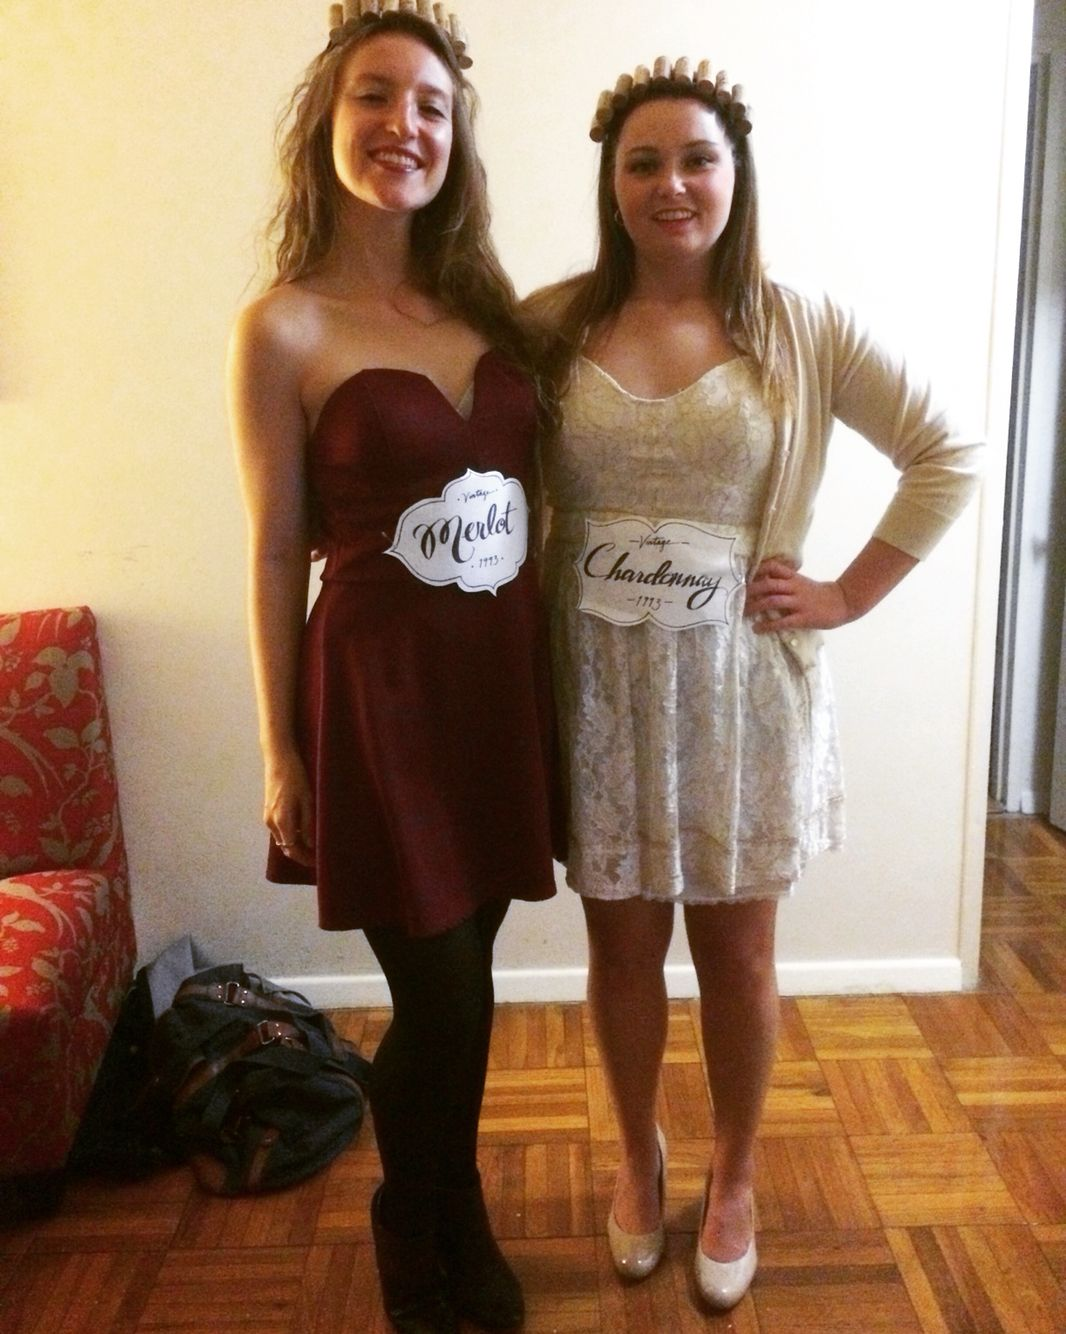 Roommate Halloween Costume - Red and white wine! | Healthyyyy ...